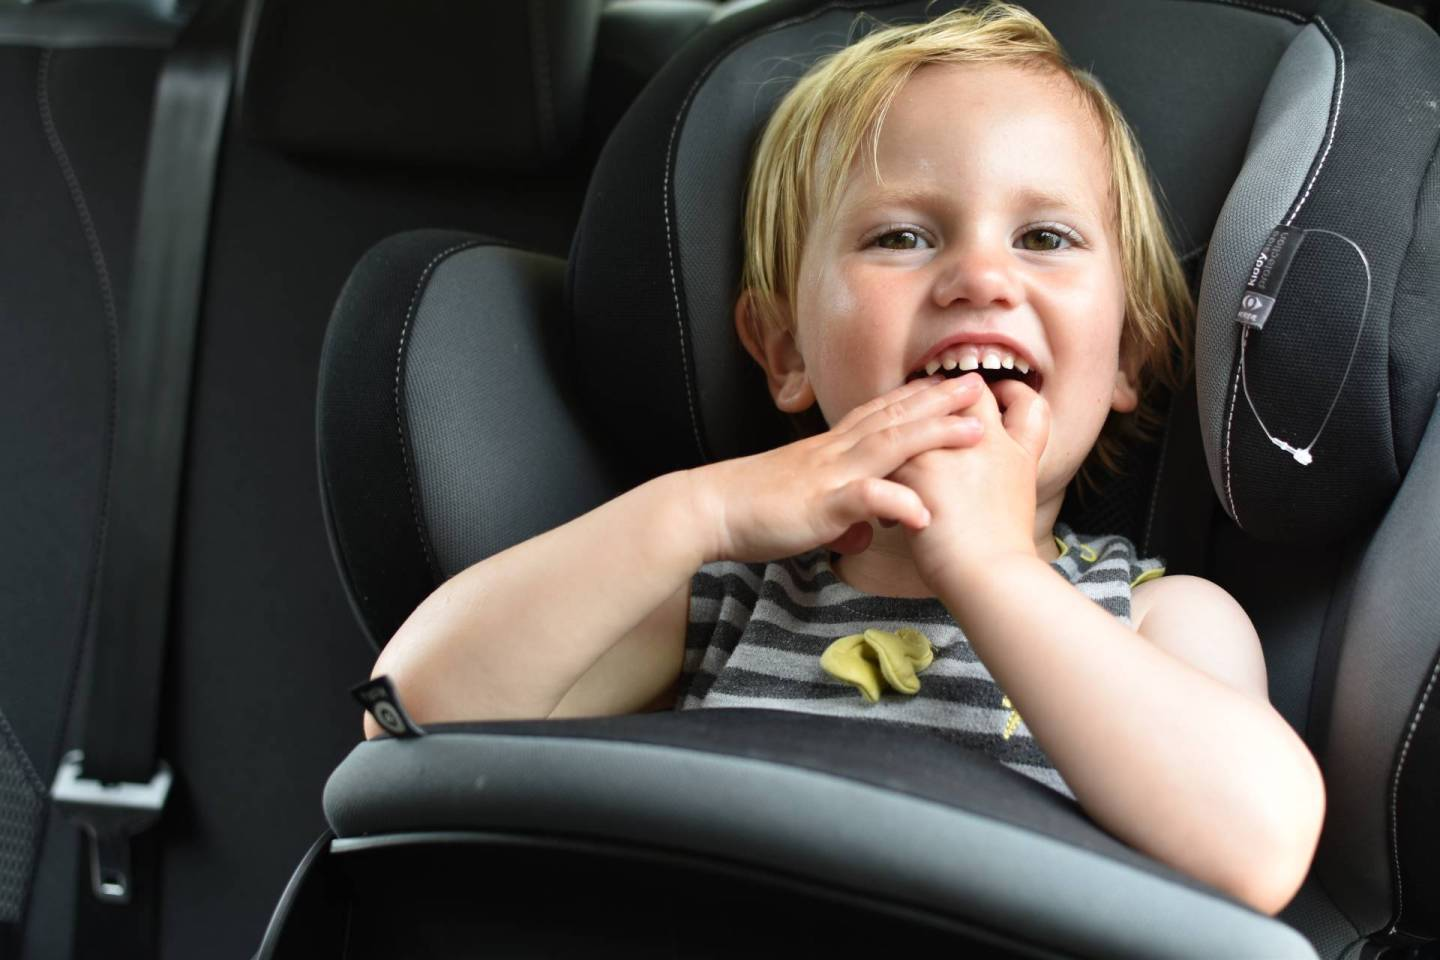 What are your car sear milestones? mine has to be the car journeys to swmming lessons and the first rides home with my new babies from the hospital  read more here to see if you have any similar ones.